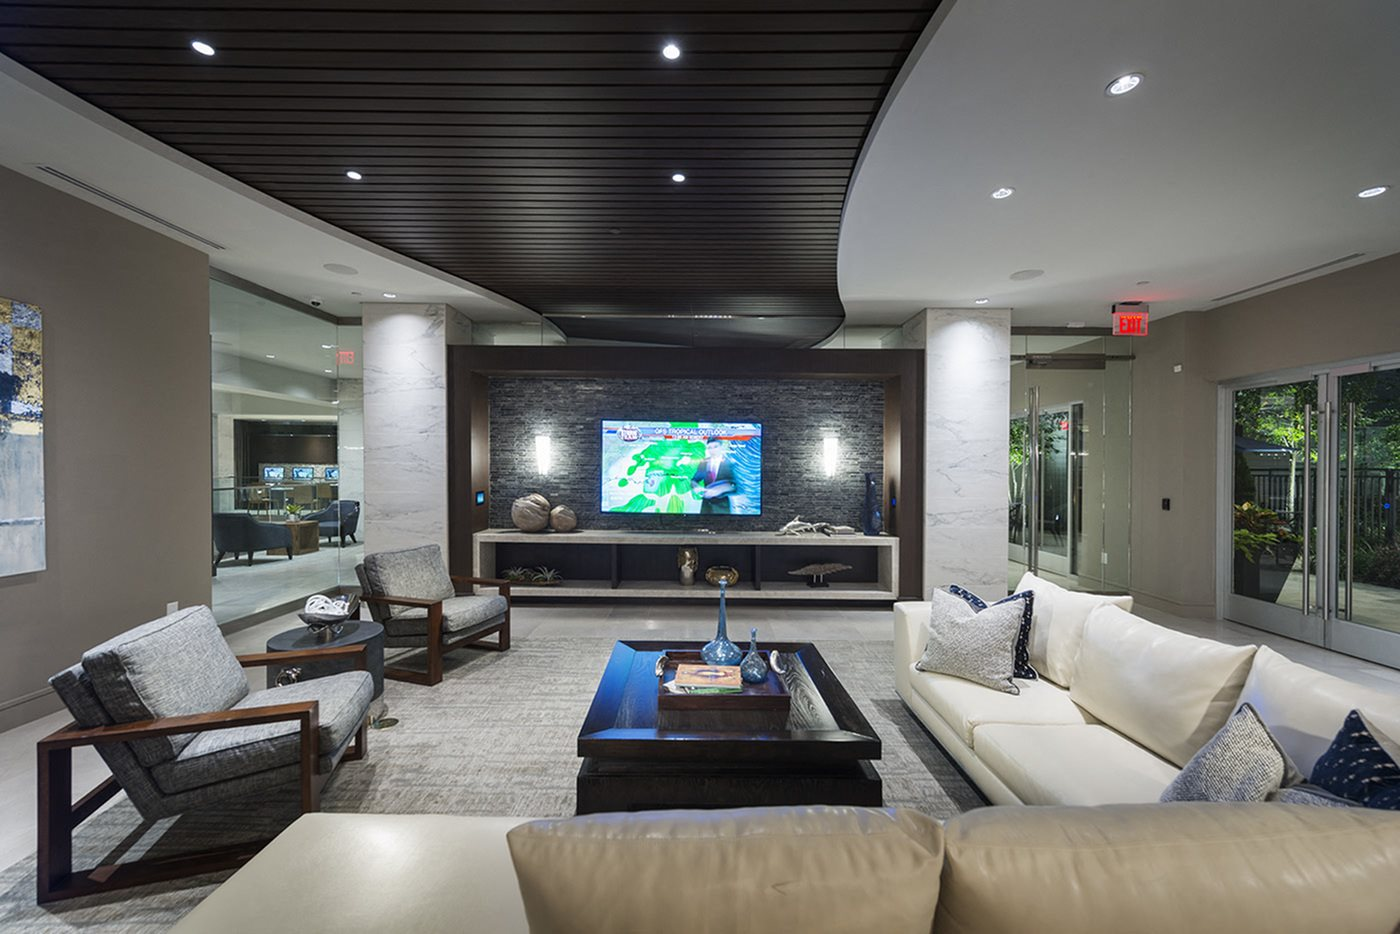 Photos And Video Of The Bryant At Buckhead Village In